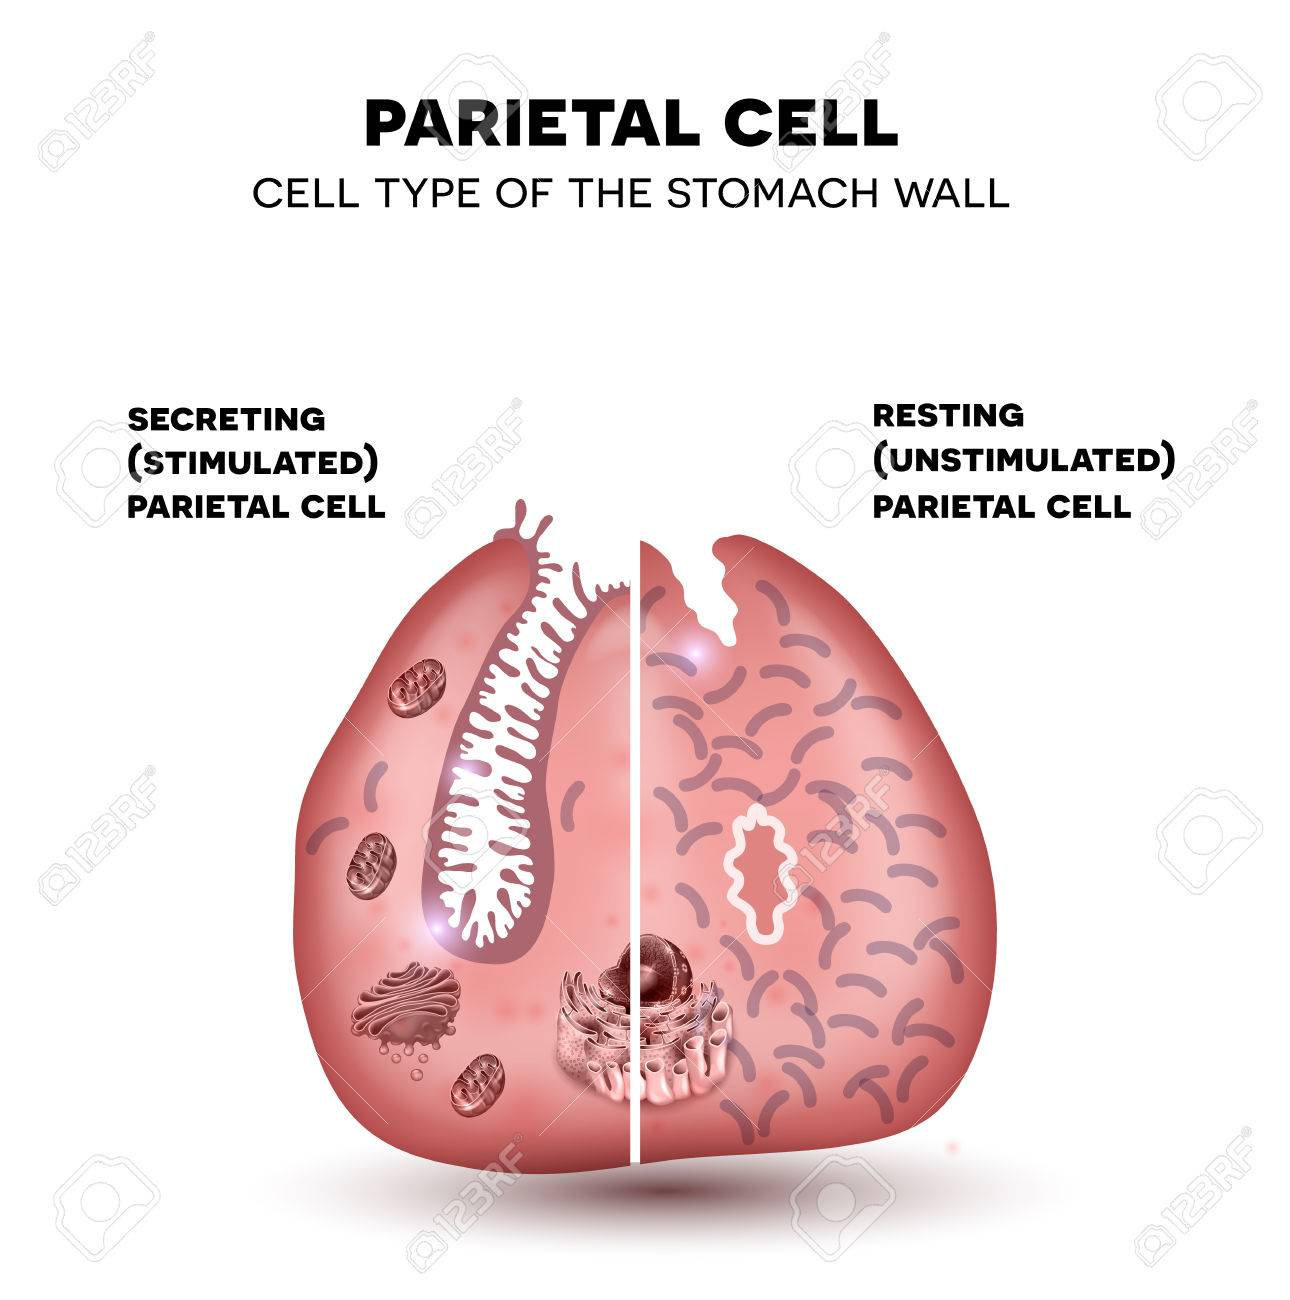 Parietal cell of the stomach wall located in the gastric glands parietal cell of the stomach wall located in the gastric glands secretes hydrochloric acid ccuart Gallery